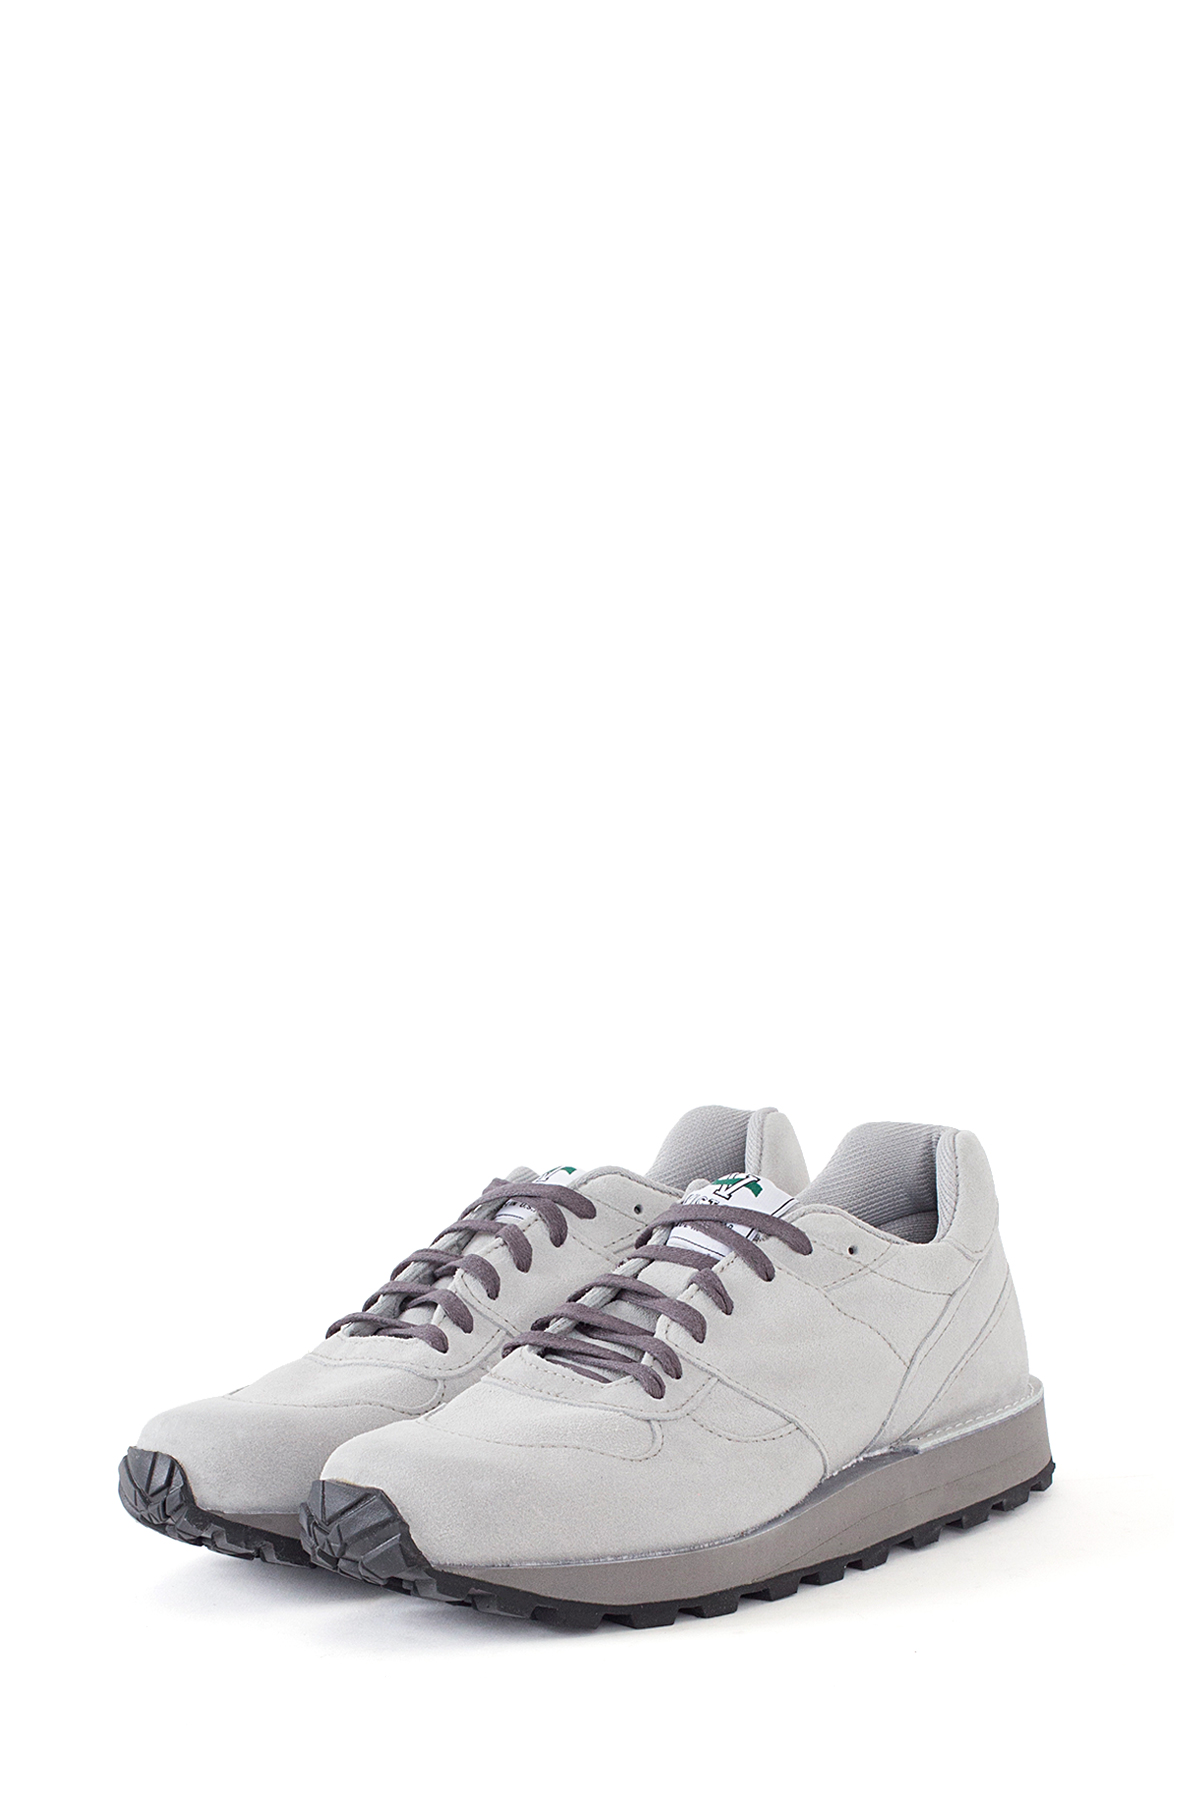 Victory Sportswear : Trail Runner (Light Grey)